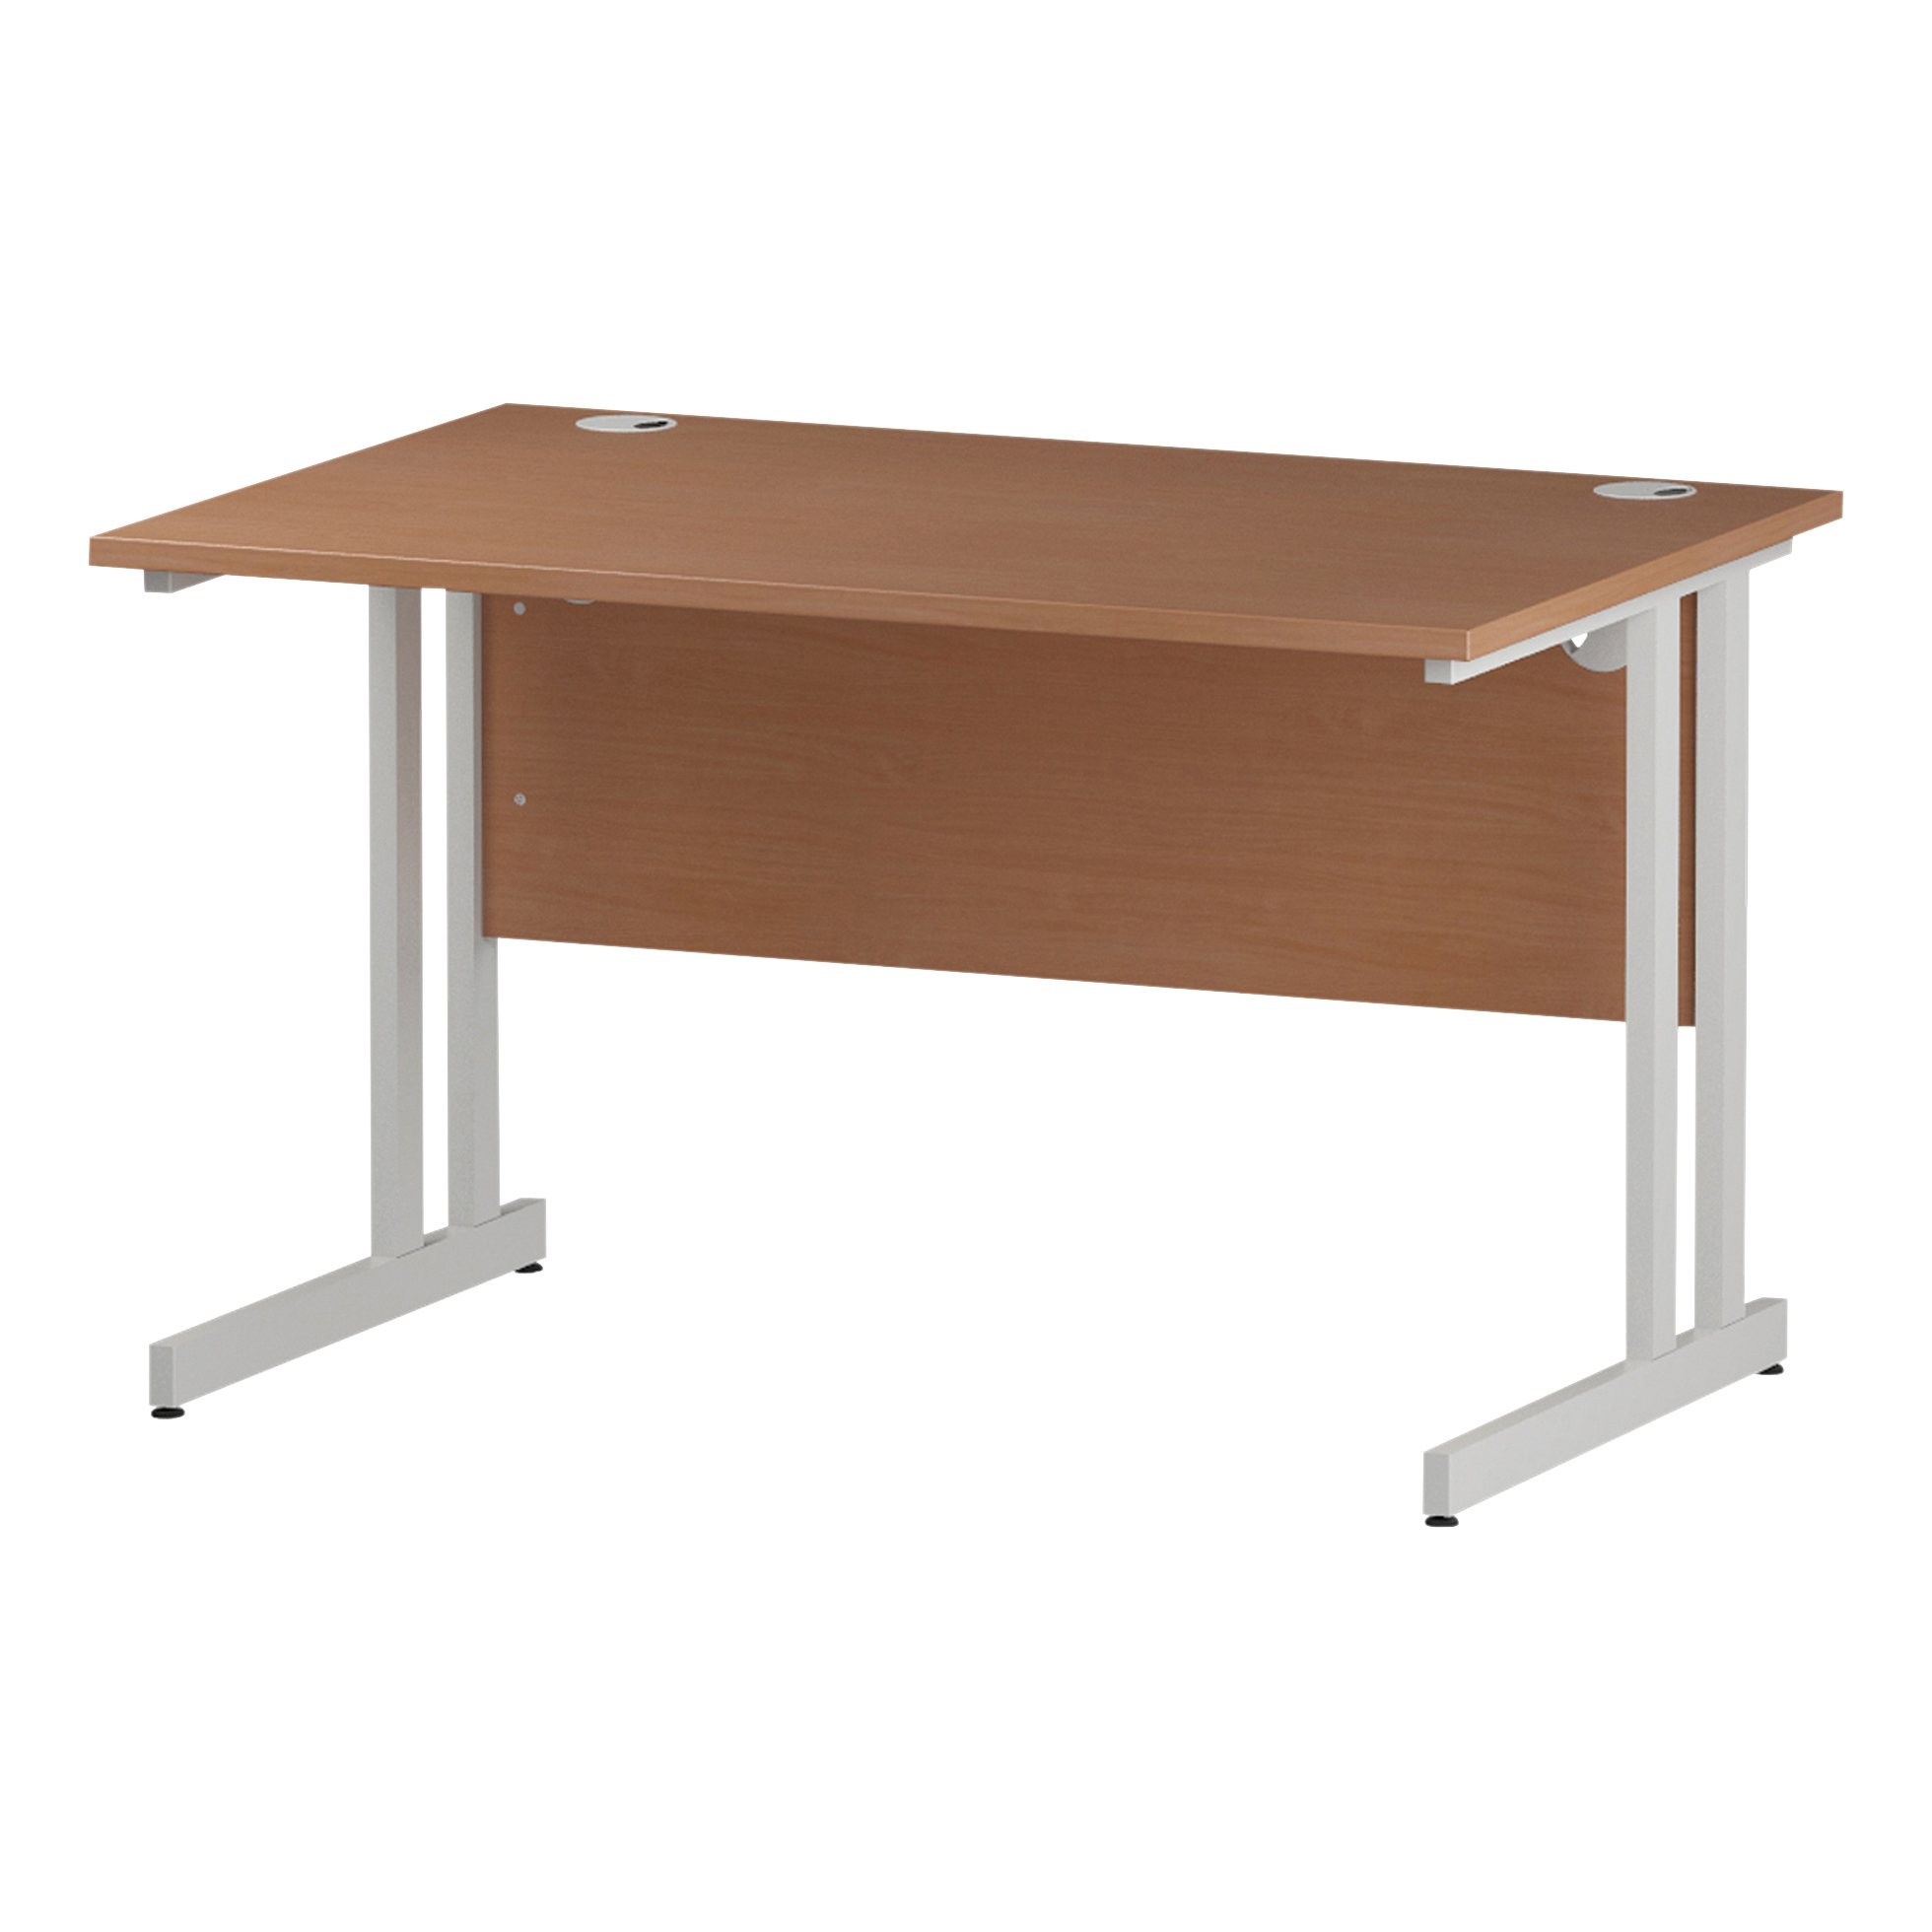 Trexus Rectangular Desk White Cantilever Leg 1200x800mm Beech Ref I001674